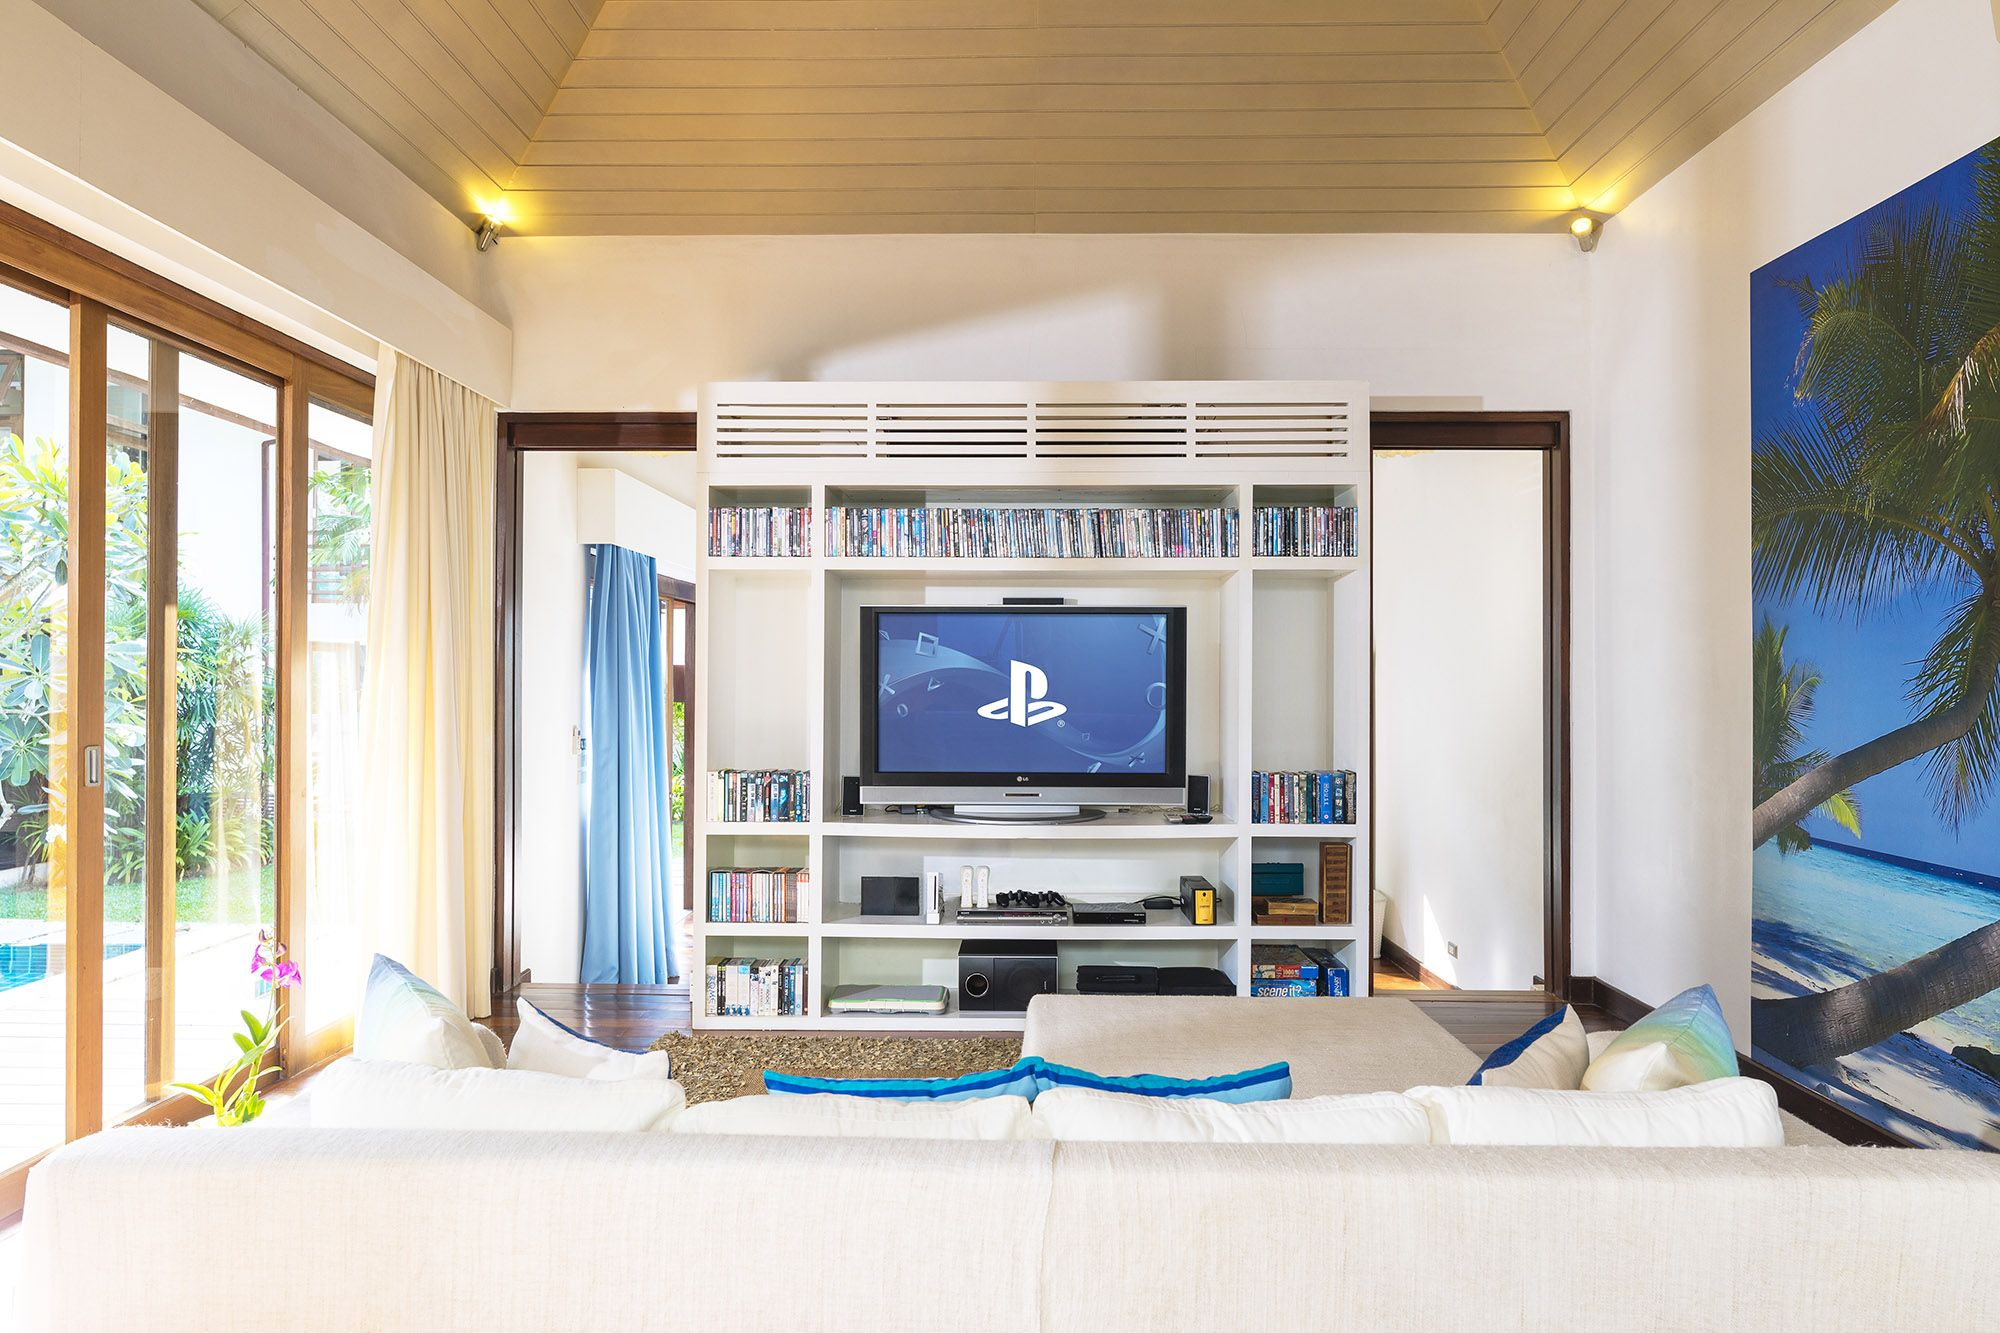 ban suriya games room home decor interior pinterest rh pinterest com